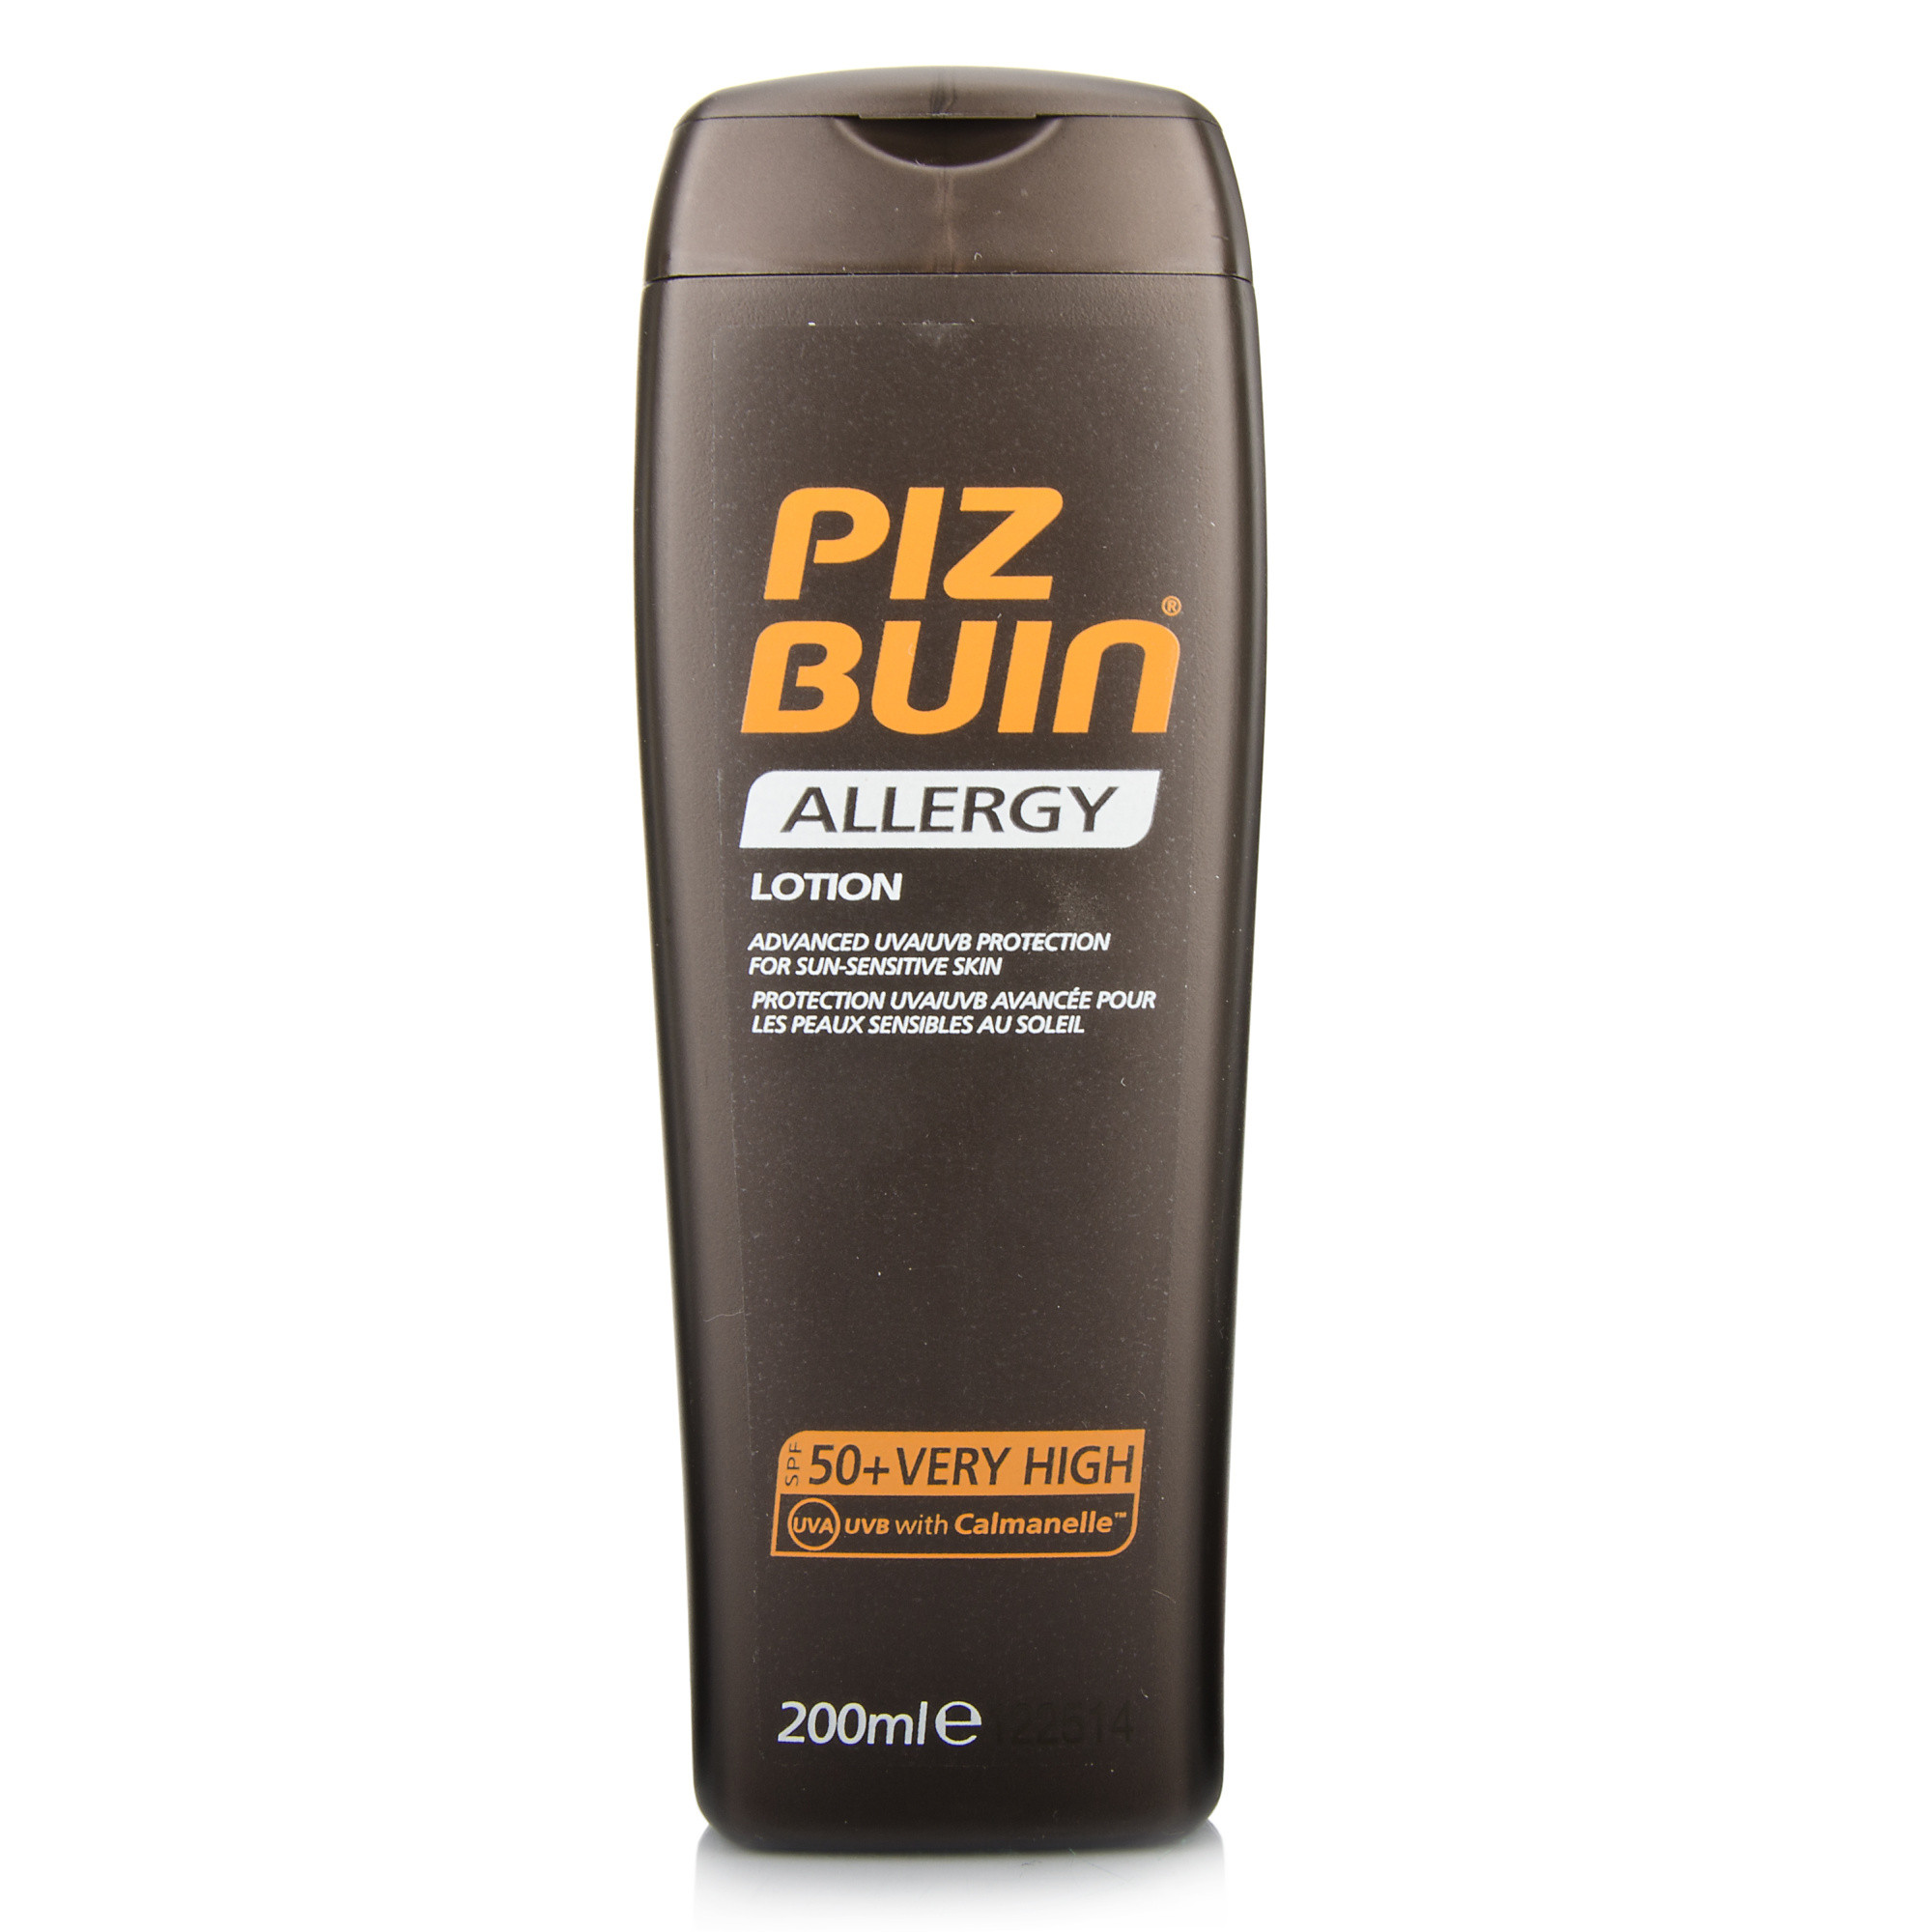 Piz Buin Allergy Lotion Spf 50+ Very High